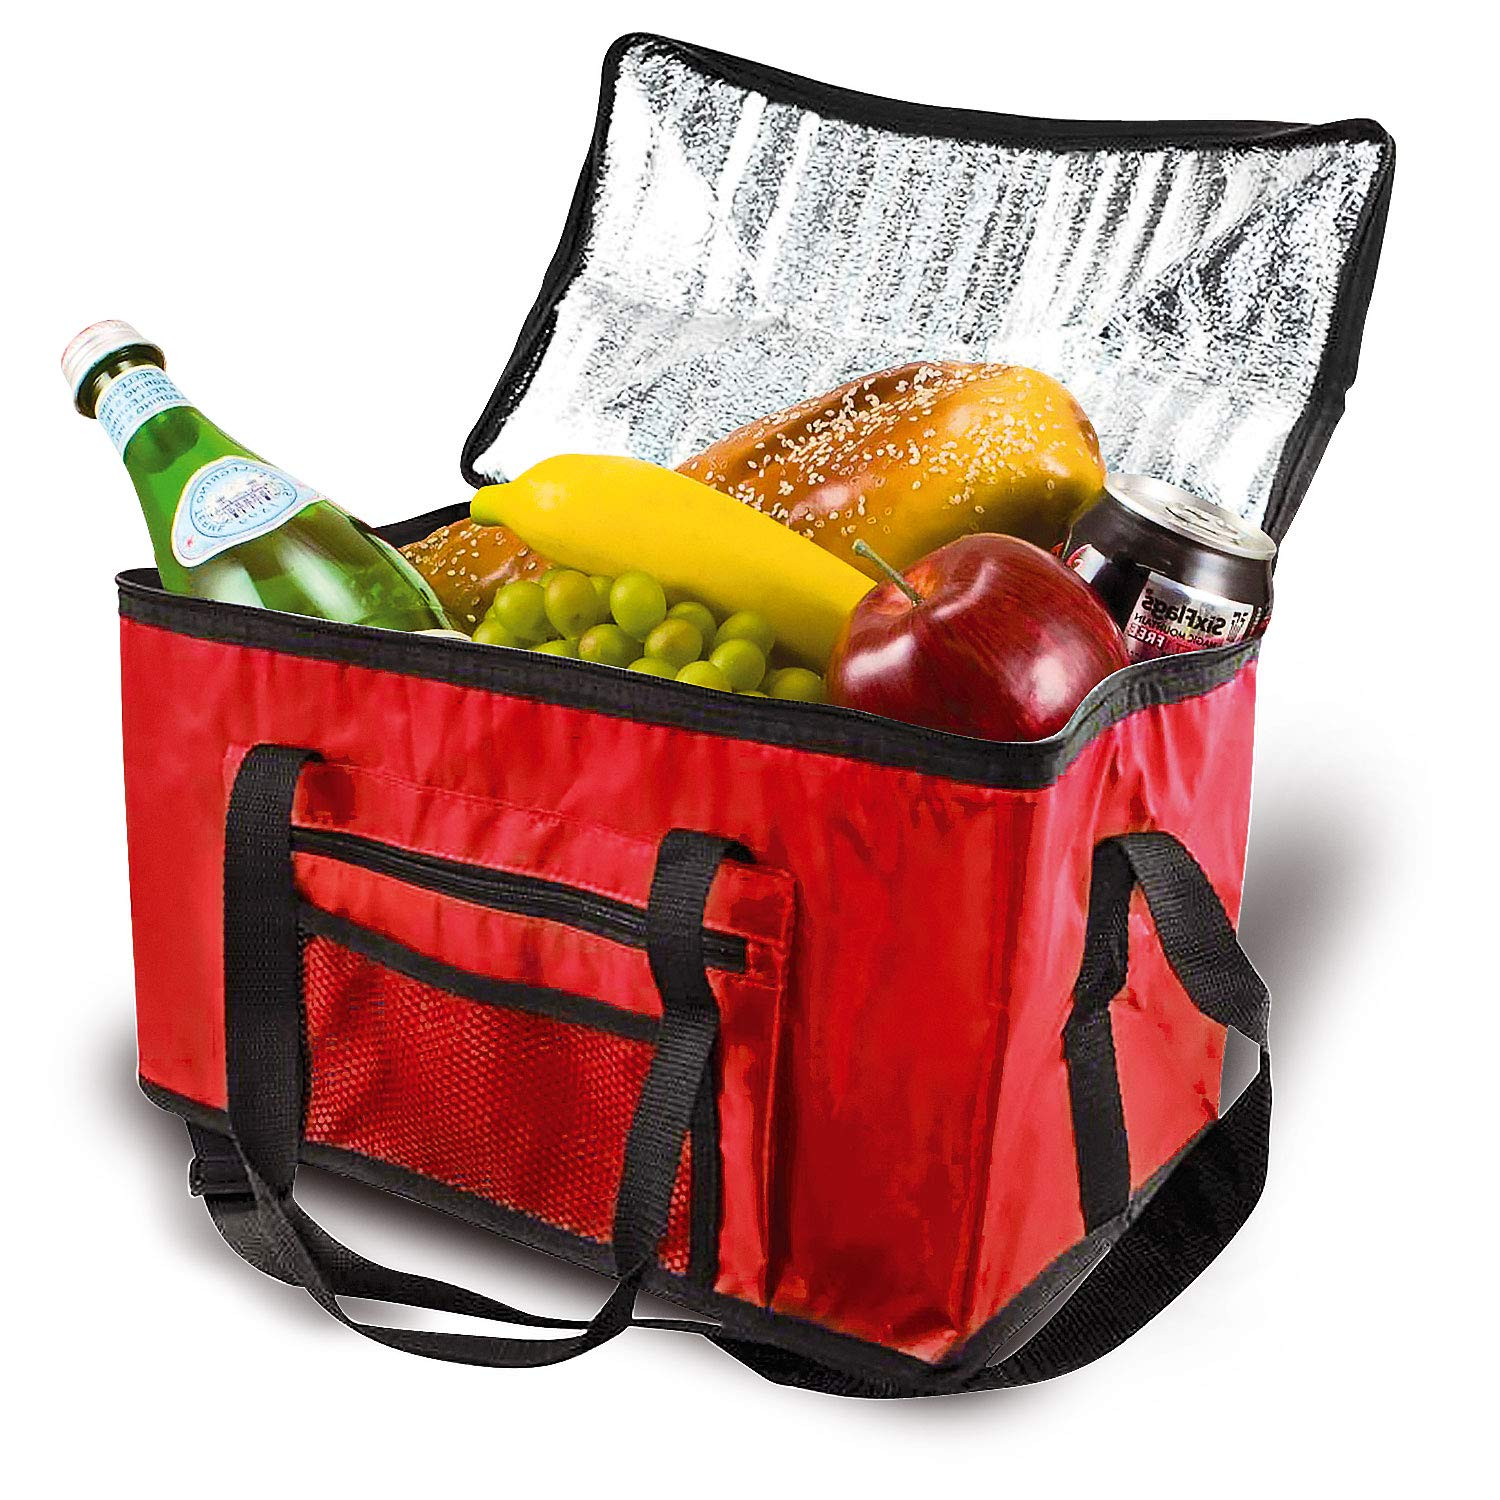 4 Ltr Insulated Compact Handy Cool Bag Camping Picnic Cooler Box Lunch Ice Food